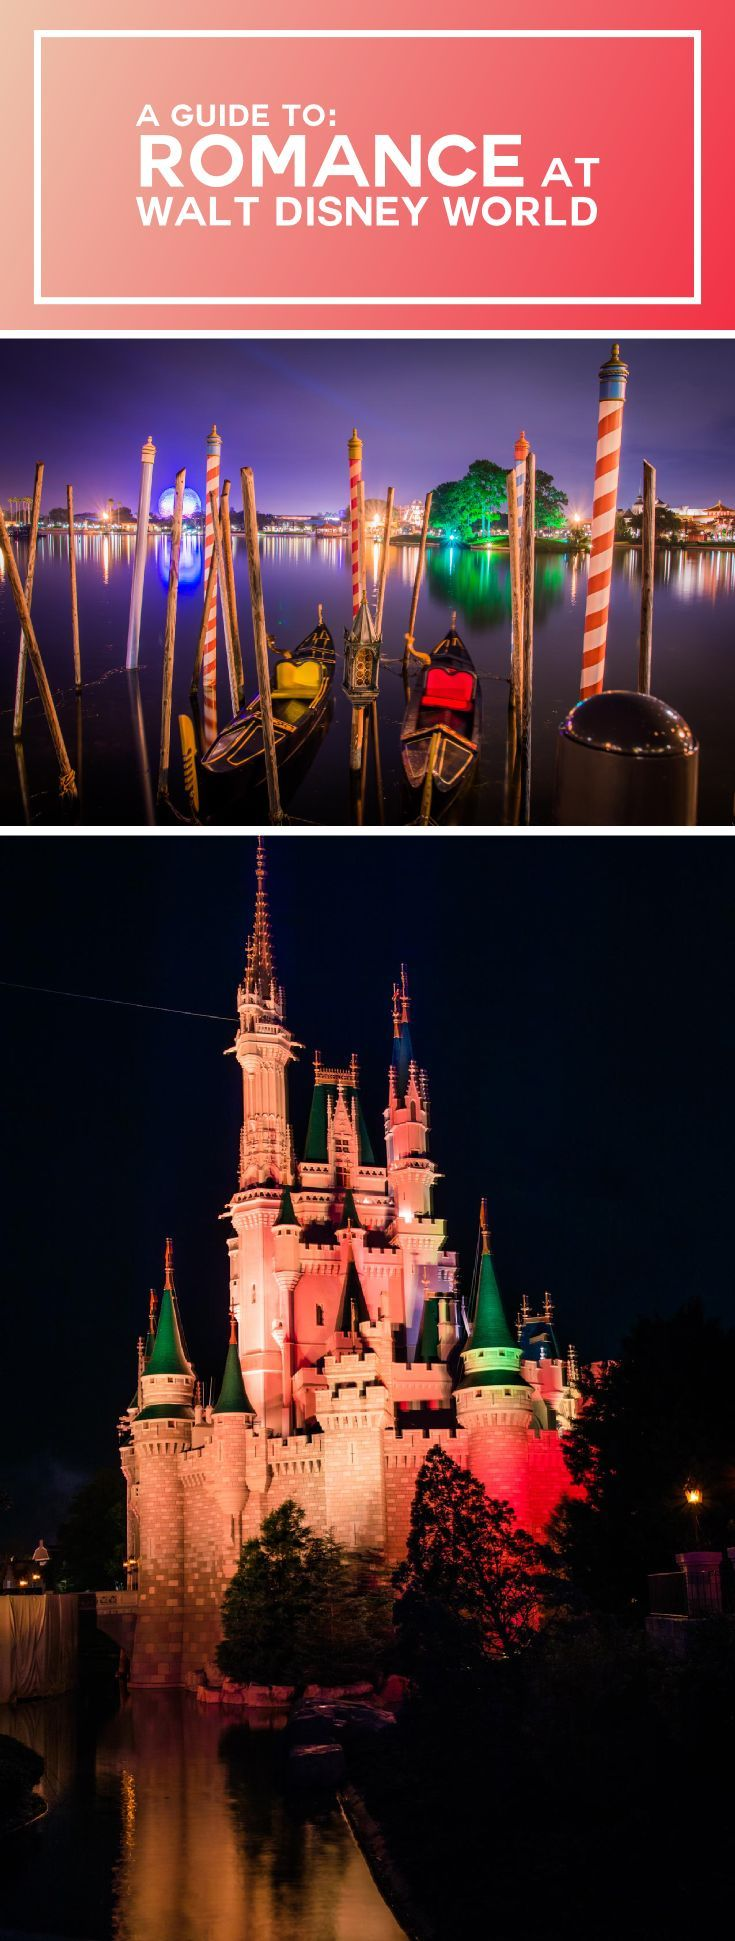 A comprehensive guide to our favorite things to do as a couple at the most magical place on earth, to also make it the most romantic place on earth. #WDW